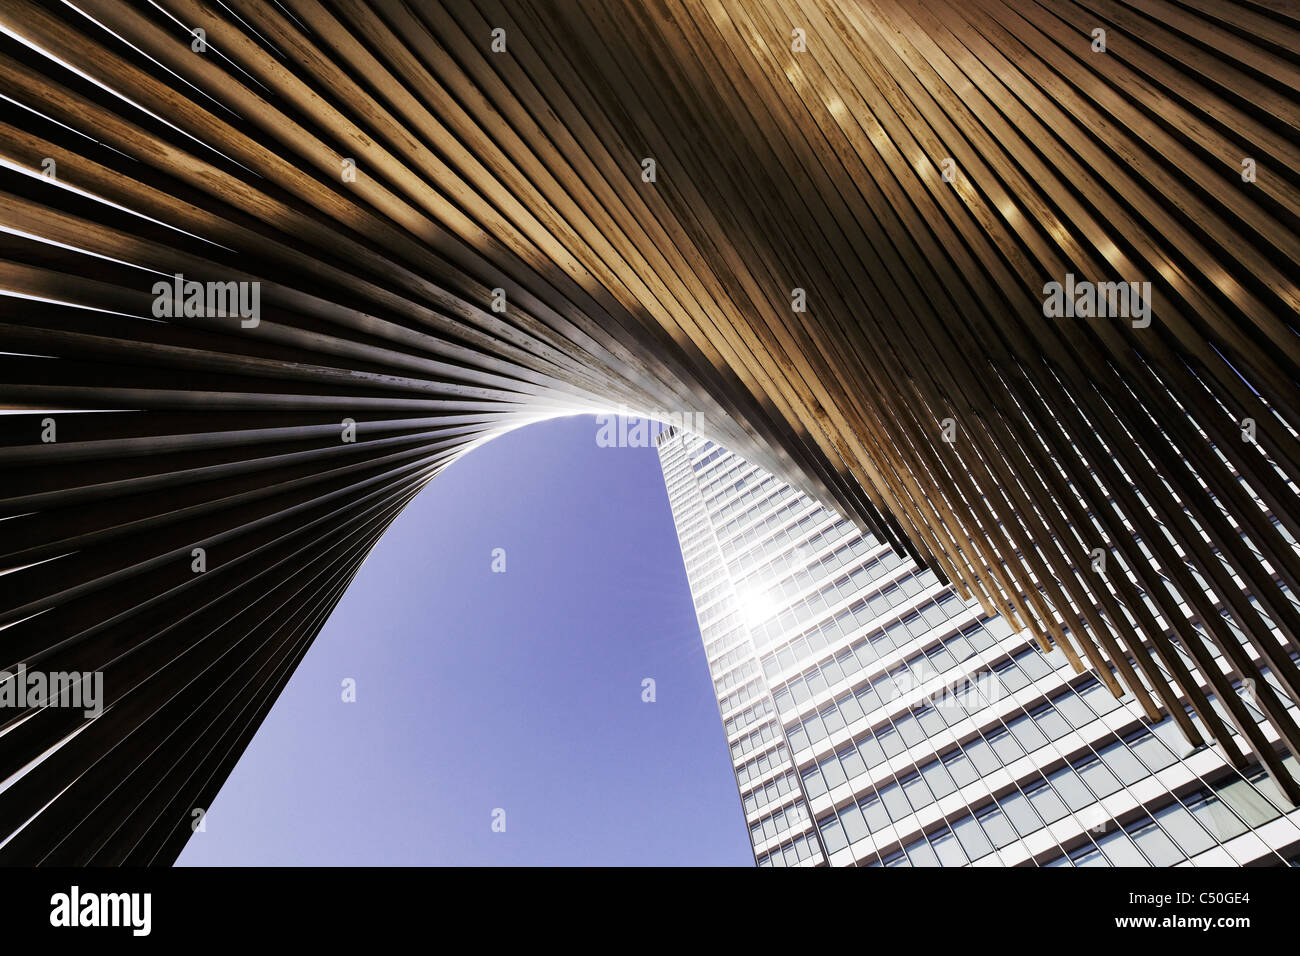 DZ Bank Tower, SELMI-Stadt Wolkenkratzer, 142 Meter hoch, kreative, urban, Platz der Republik, Frankfurt Am Main, Stockbild